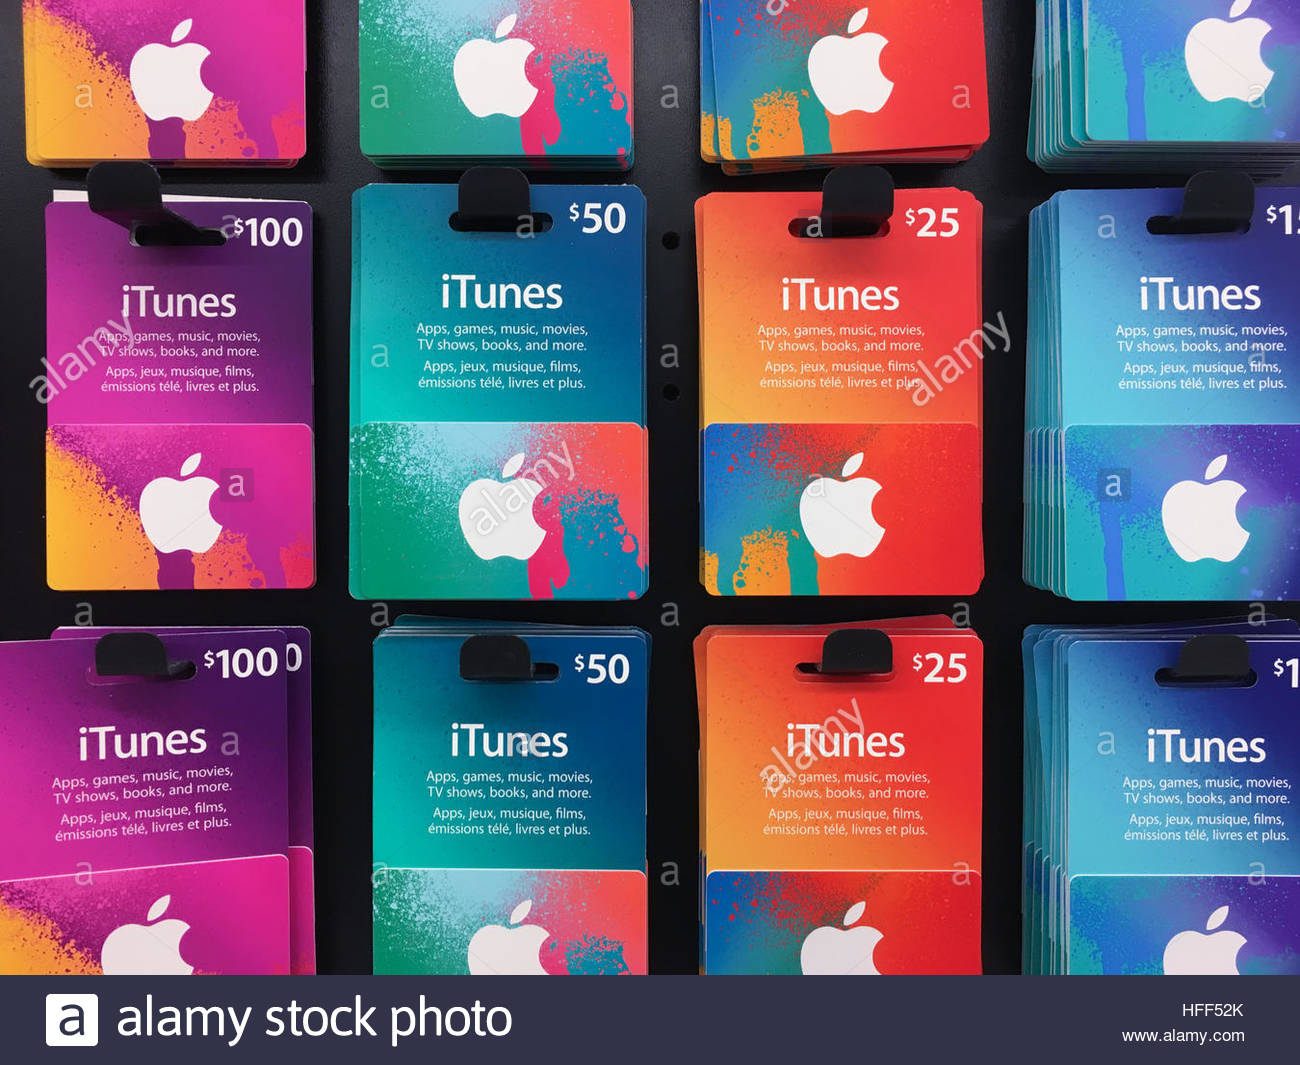 iTunes music gift cards of different values displayed for sale Stock Photo, Royalty Free Image ...